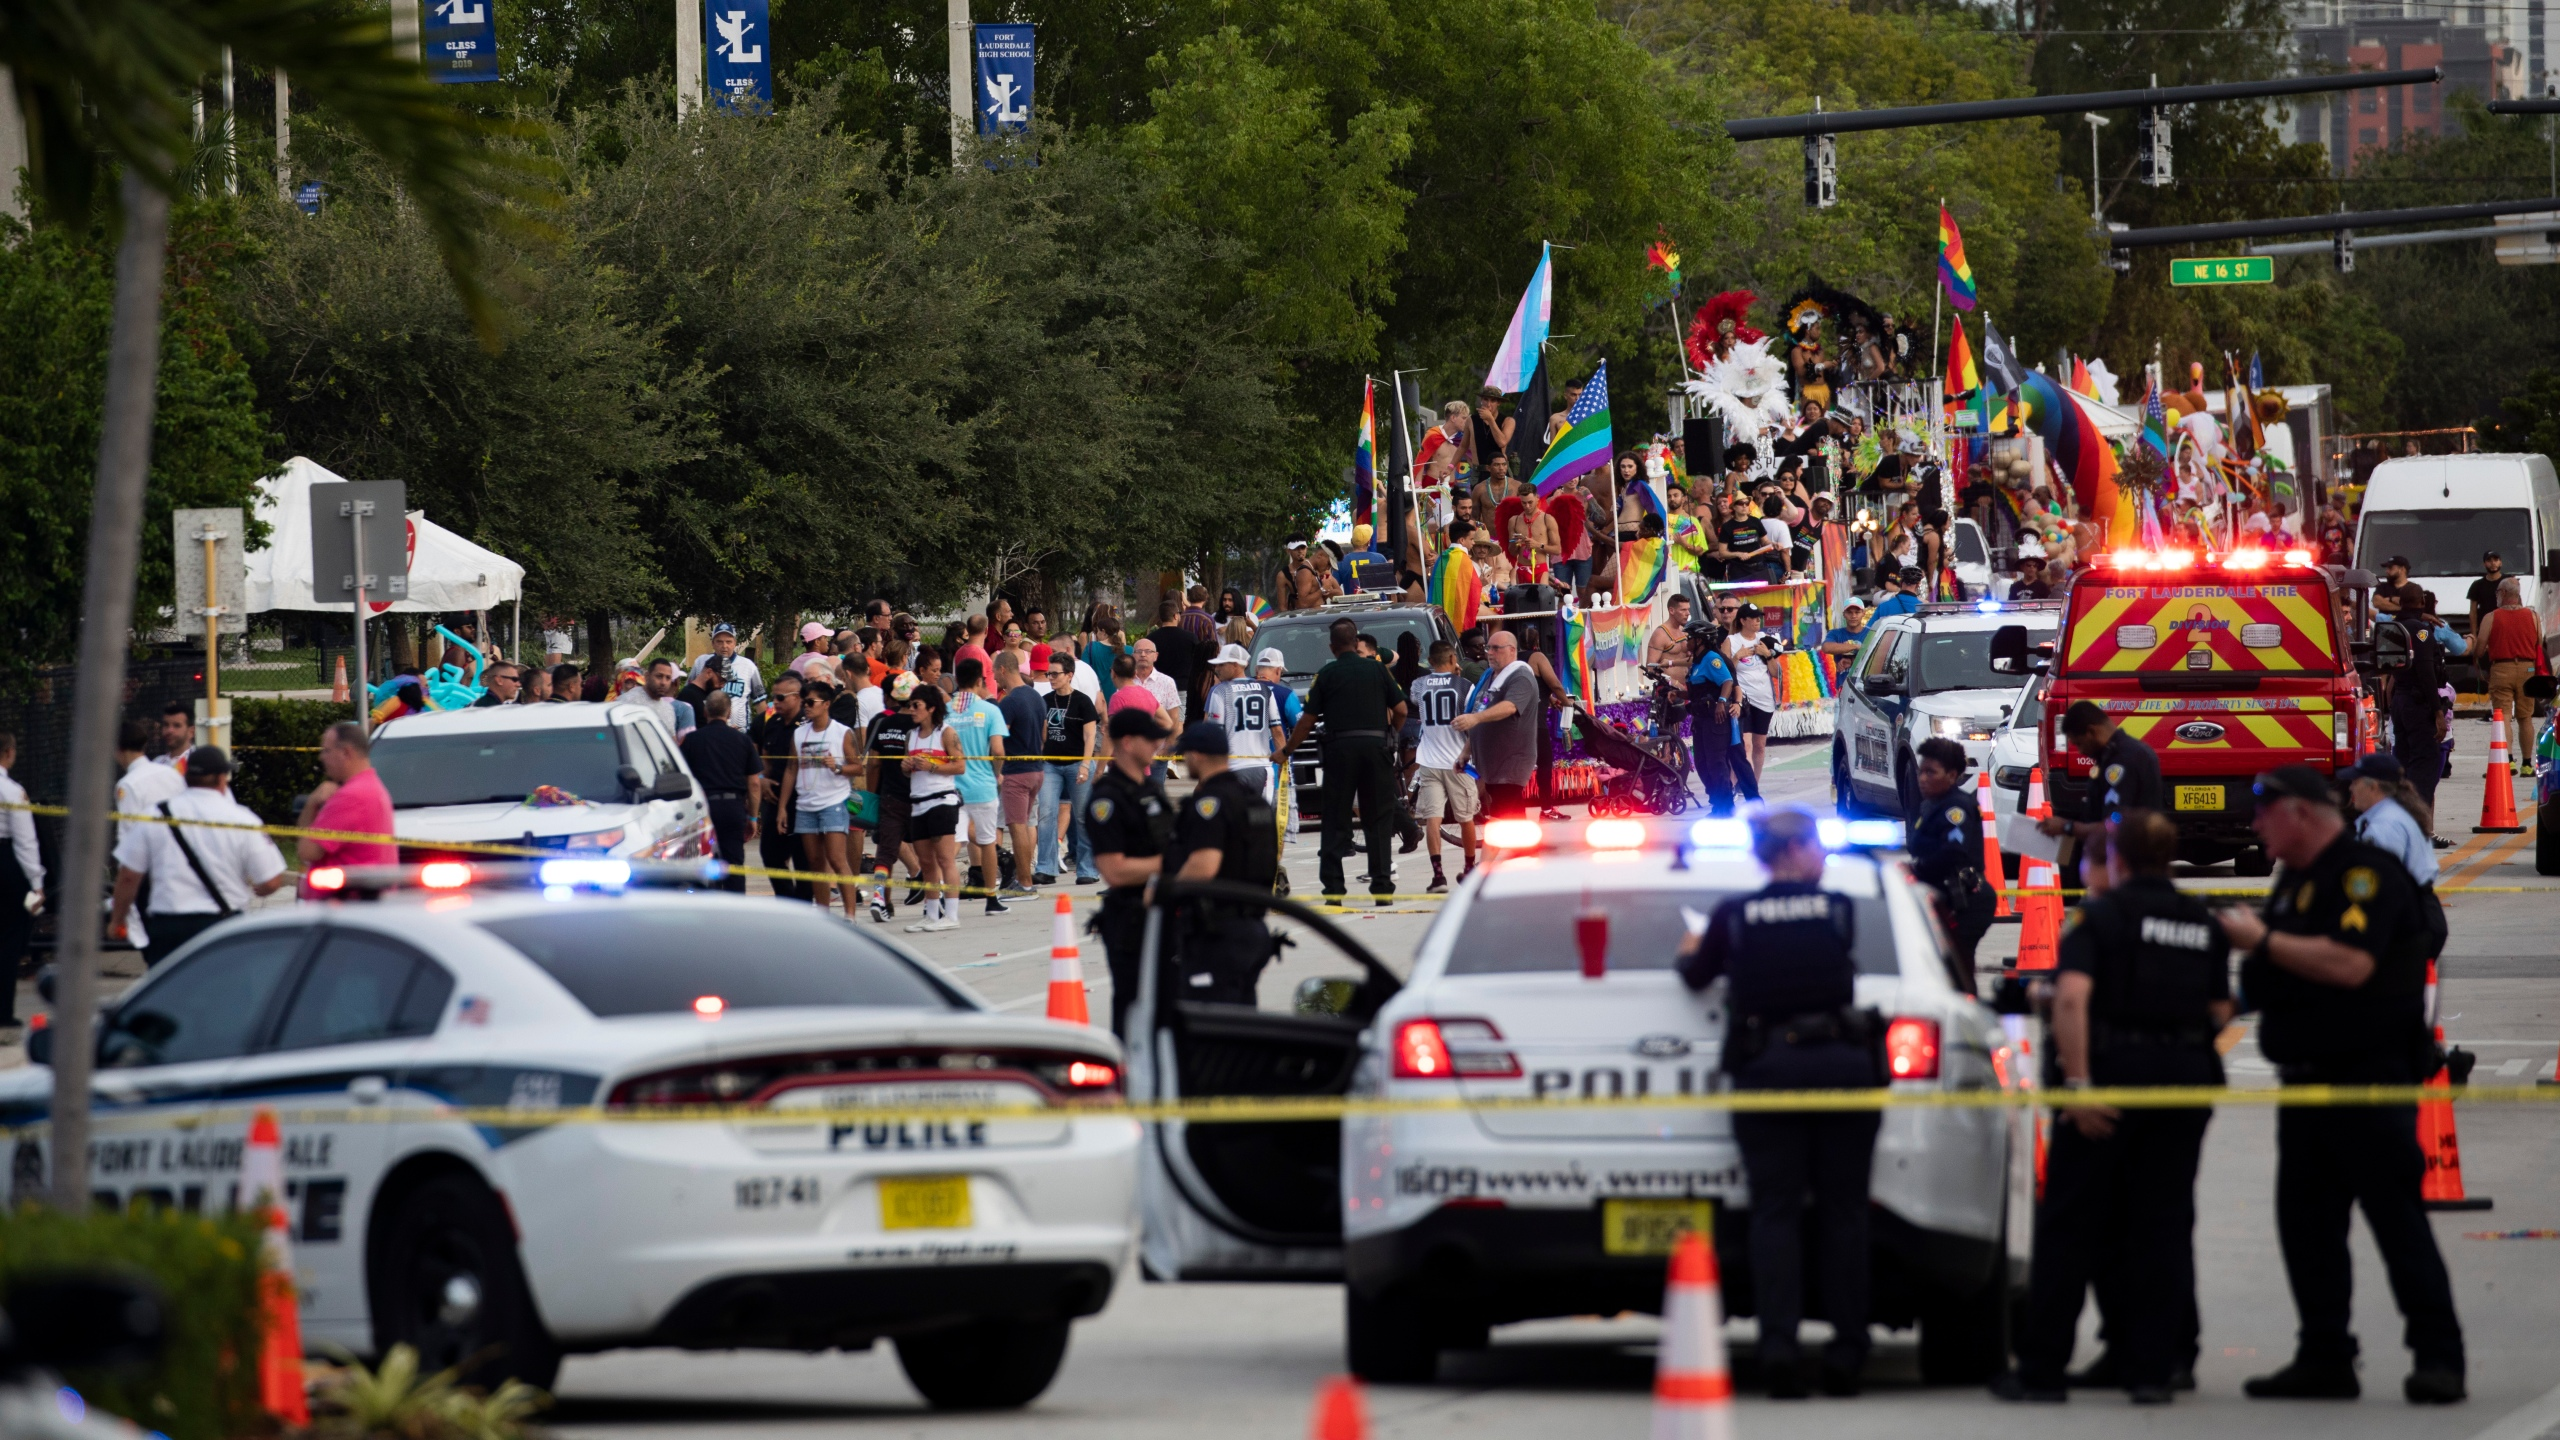 Police and firefighters respond after a truck drove into a crowd of people injuring them during The Stonewall Pride Parade and Street Festival in Wilton Manors, Fla., on Saturday, June 19, 2021. WPLG-TV reports that the driver of the truck was taken into custody. (Chris Day/South Florida Sun-Sentinel via AP)